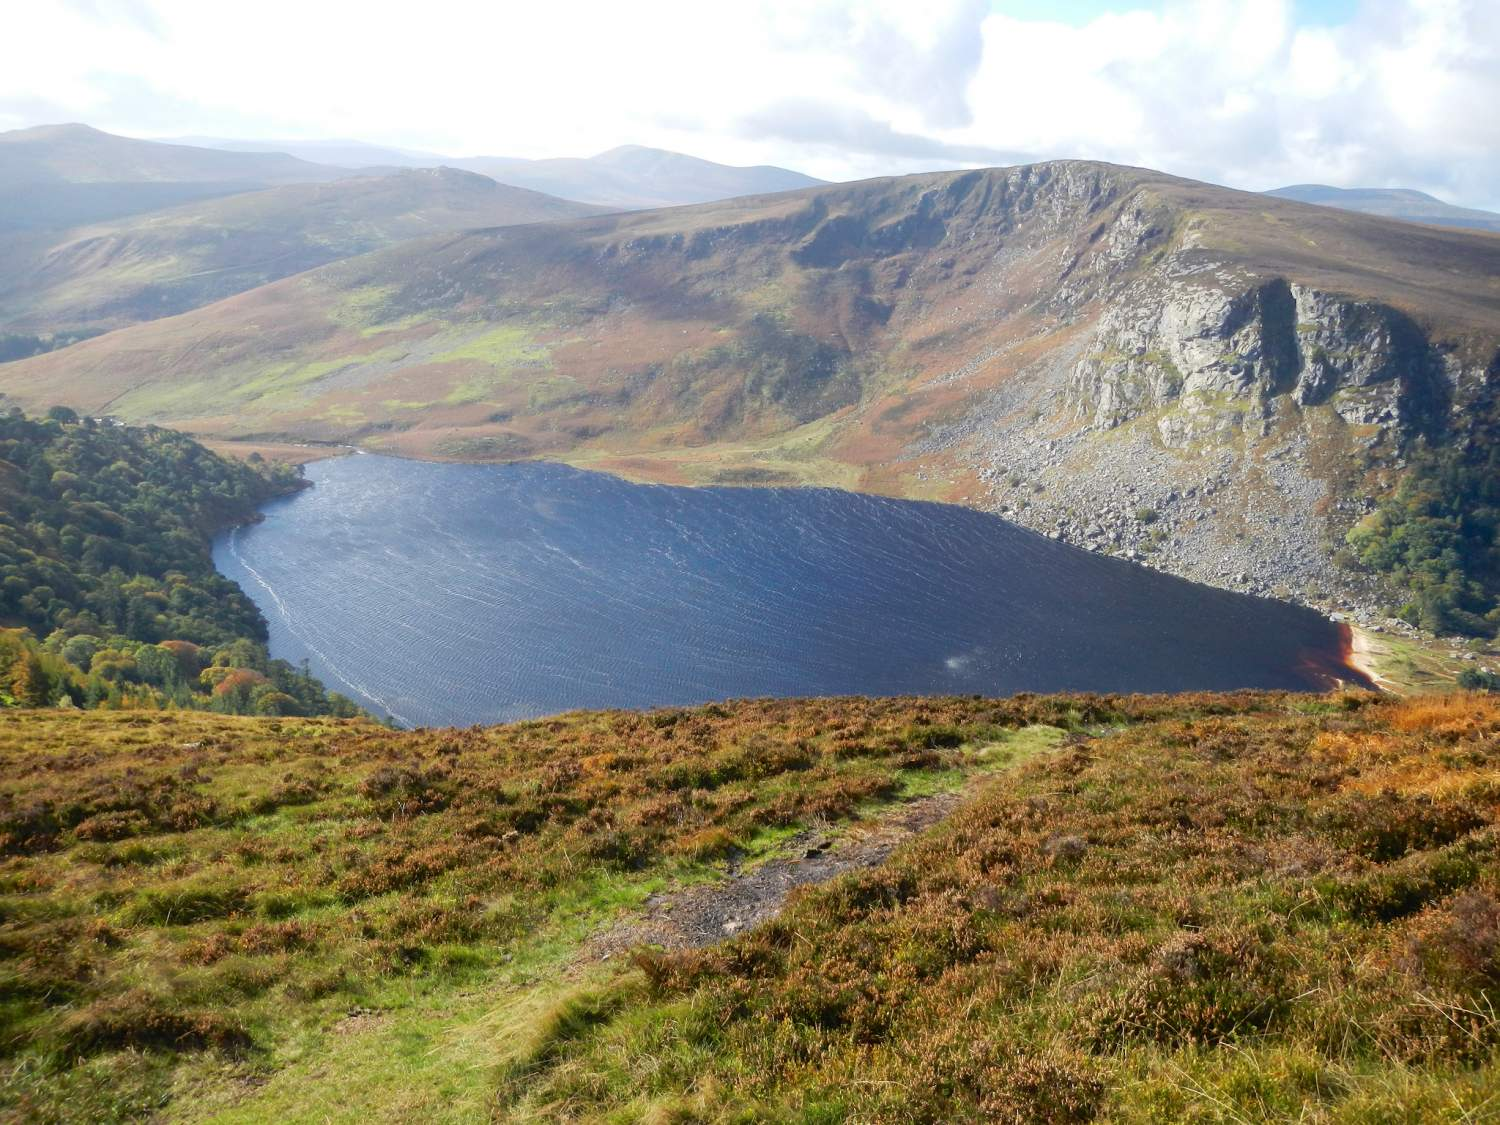 Lough Tay lake seen from the path on the Wicklow mountains, Ireland